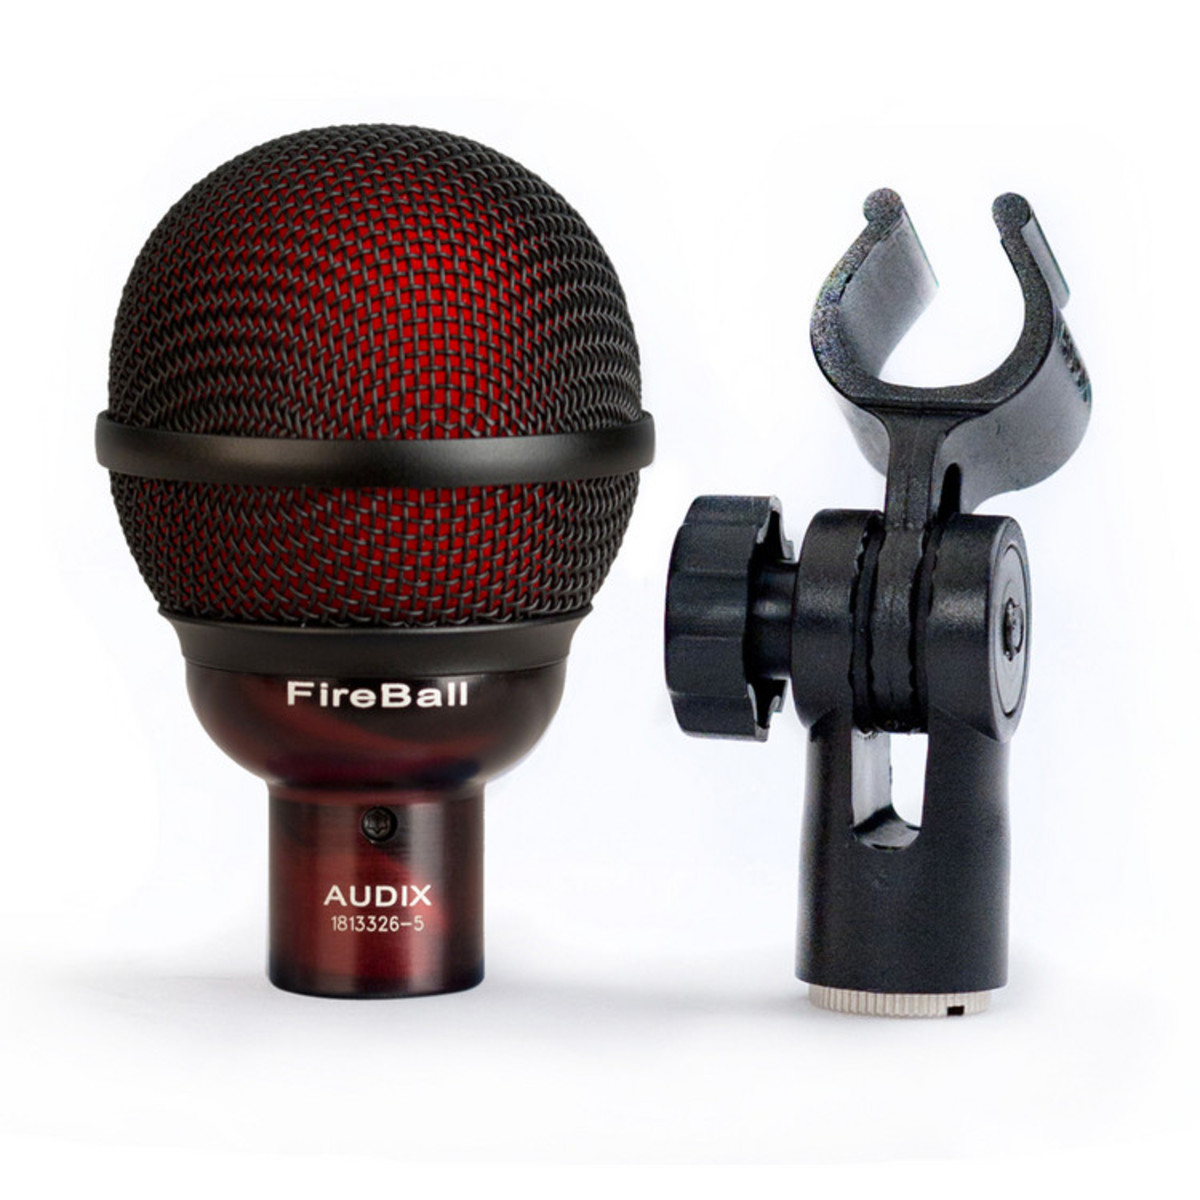 audix fireball dynamic cardioid ultra small microphone at. Black Bedroom Furniture Sets. Home Design Ideas